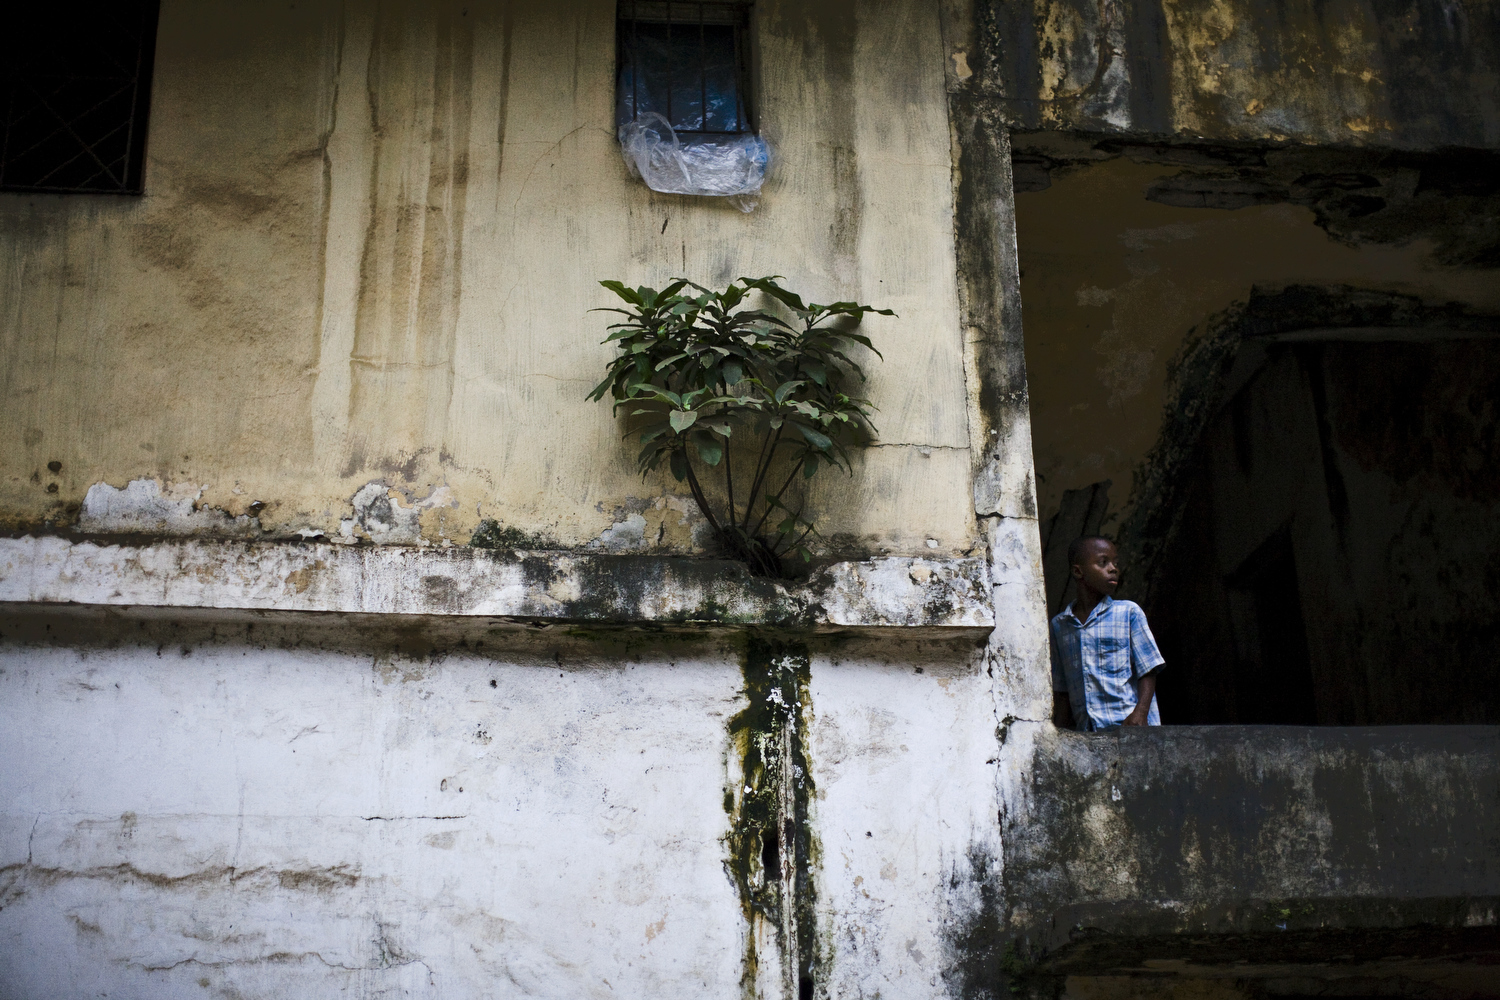 A young boy looks out of a decaying building in Monrovia. Though many buildings have been repaired since the war, much is still in disrepair.